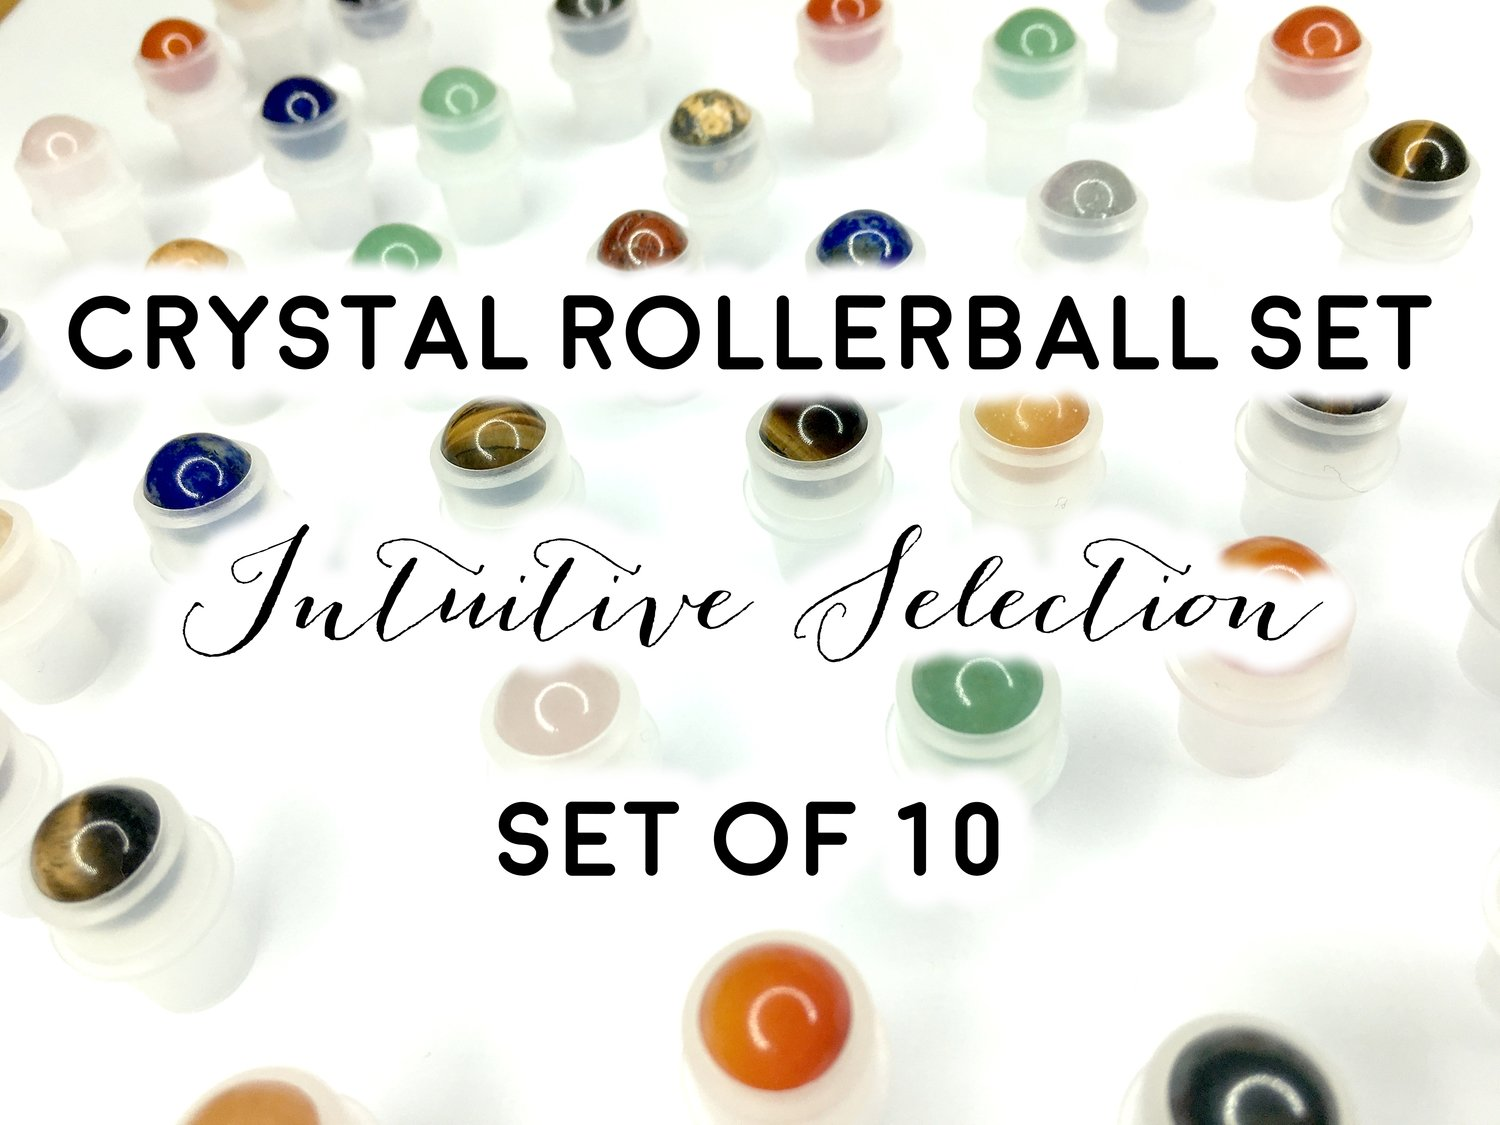 Crystal Rollerballs Set: Intuitive Selection of 10